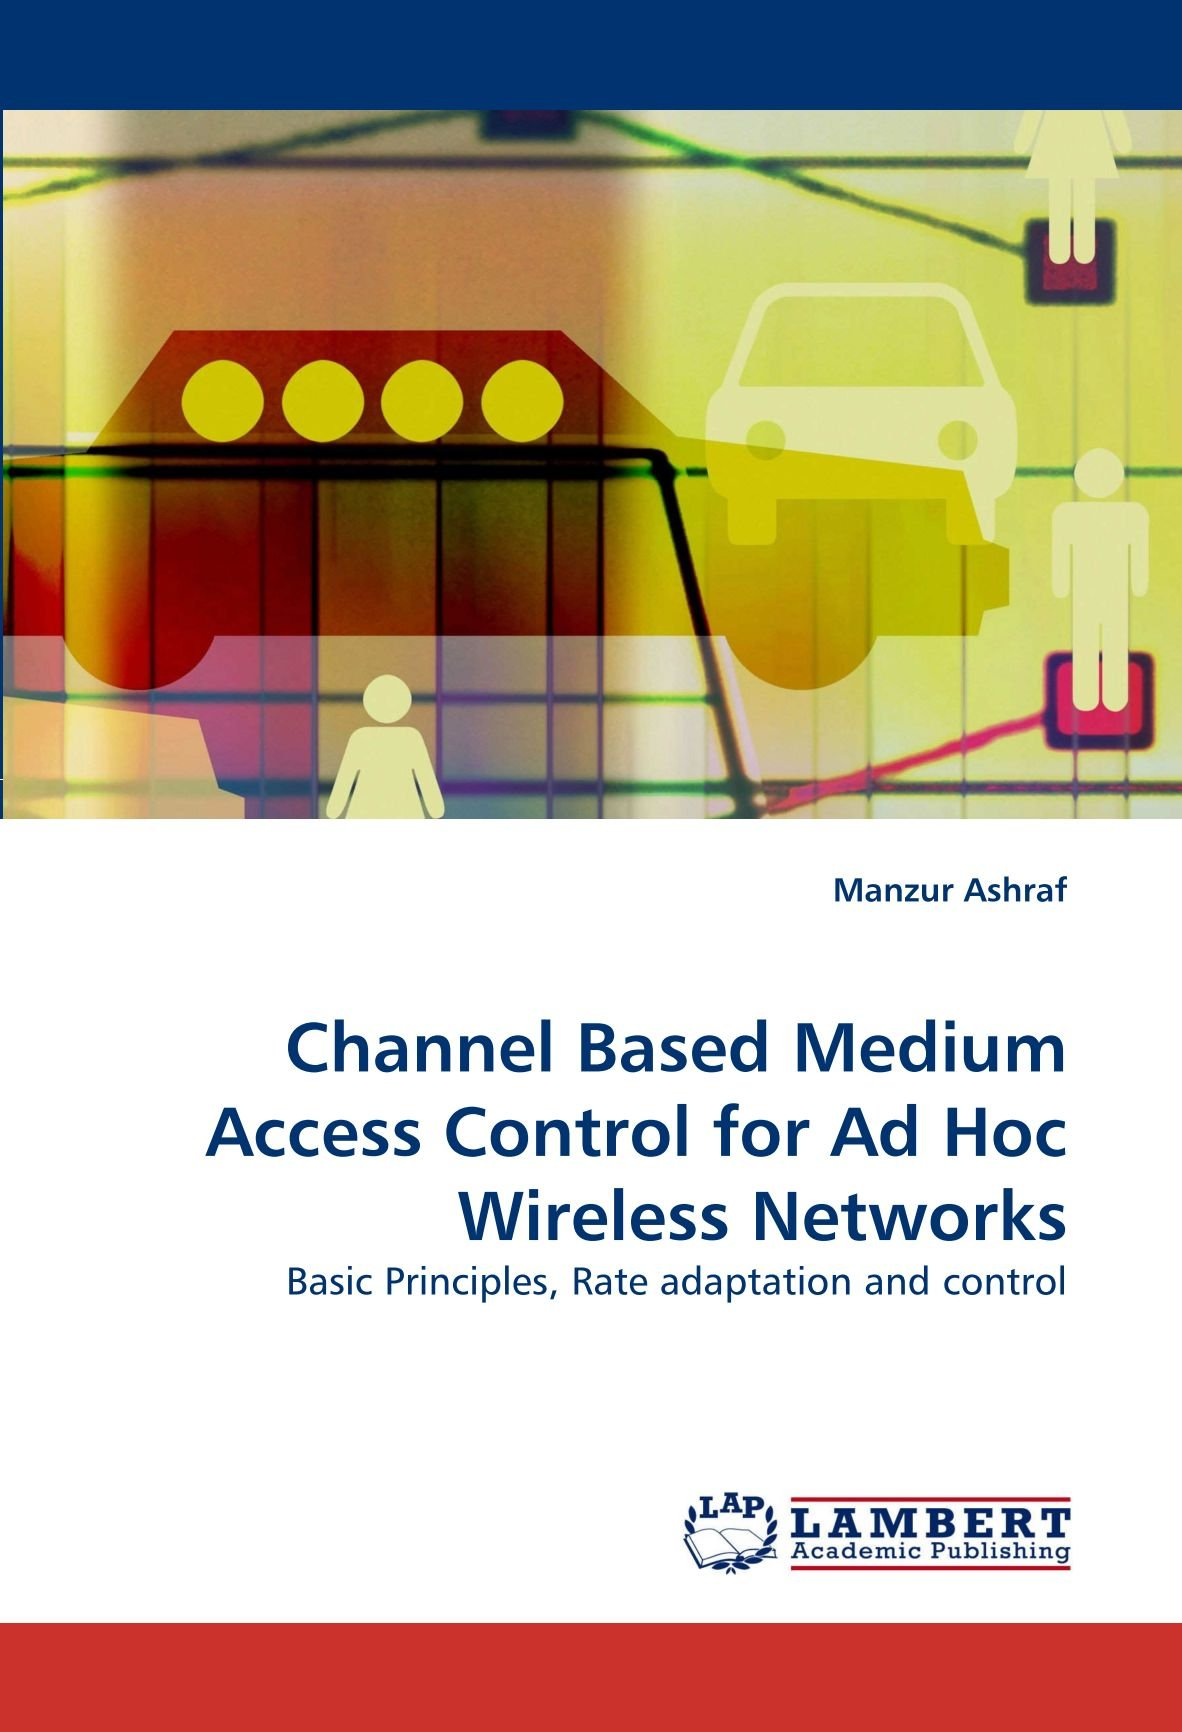 Channel Based Medium Access Control for Ad Hoc Wireless Networks: Basic Principles, Rate adaptation and control ebook